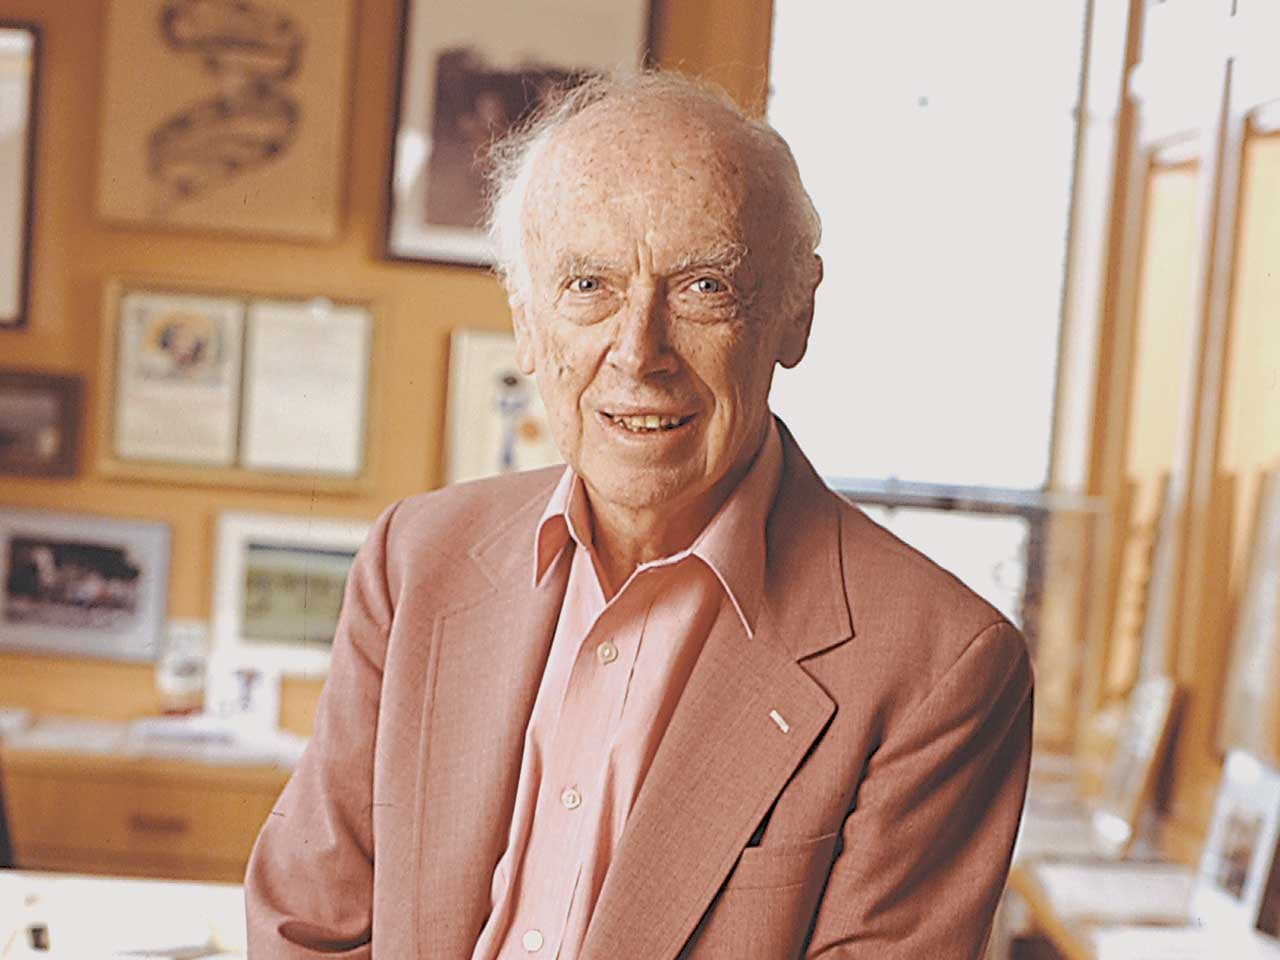 james d watson James dewey watson (born april 6, 1928) is an american molecular biologist and zoologist watson is of english, scottish and irish ancestry he is best known as one of the discoverers of the structure of dna with francis crick, in 1953.